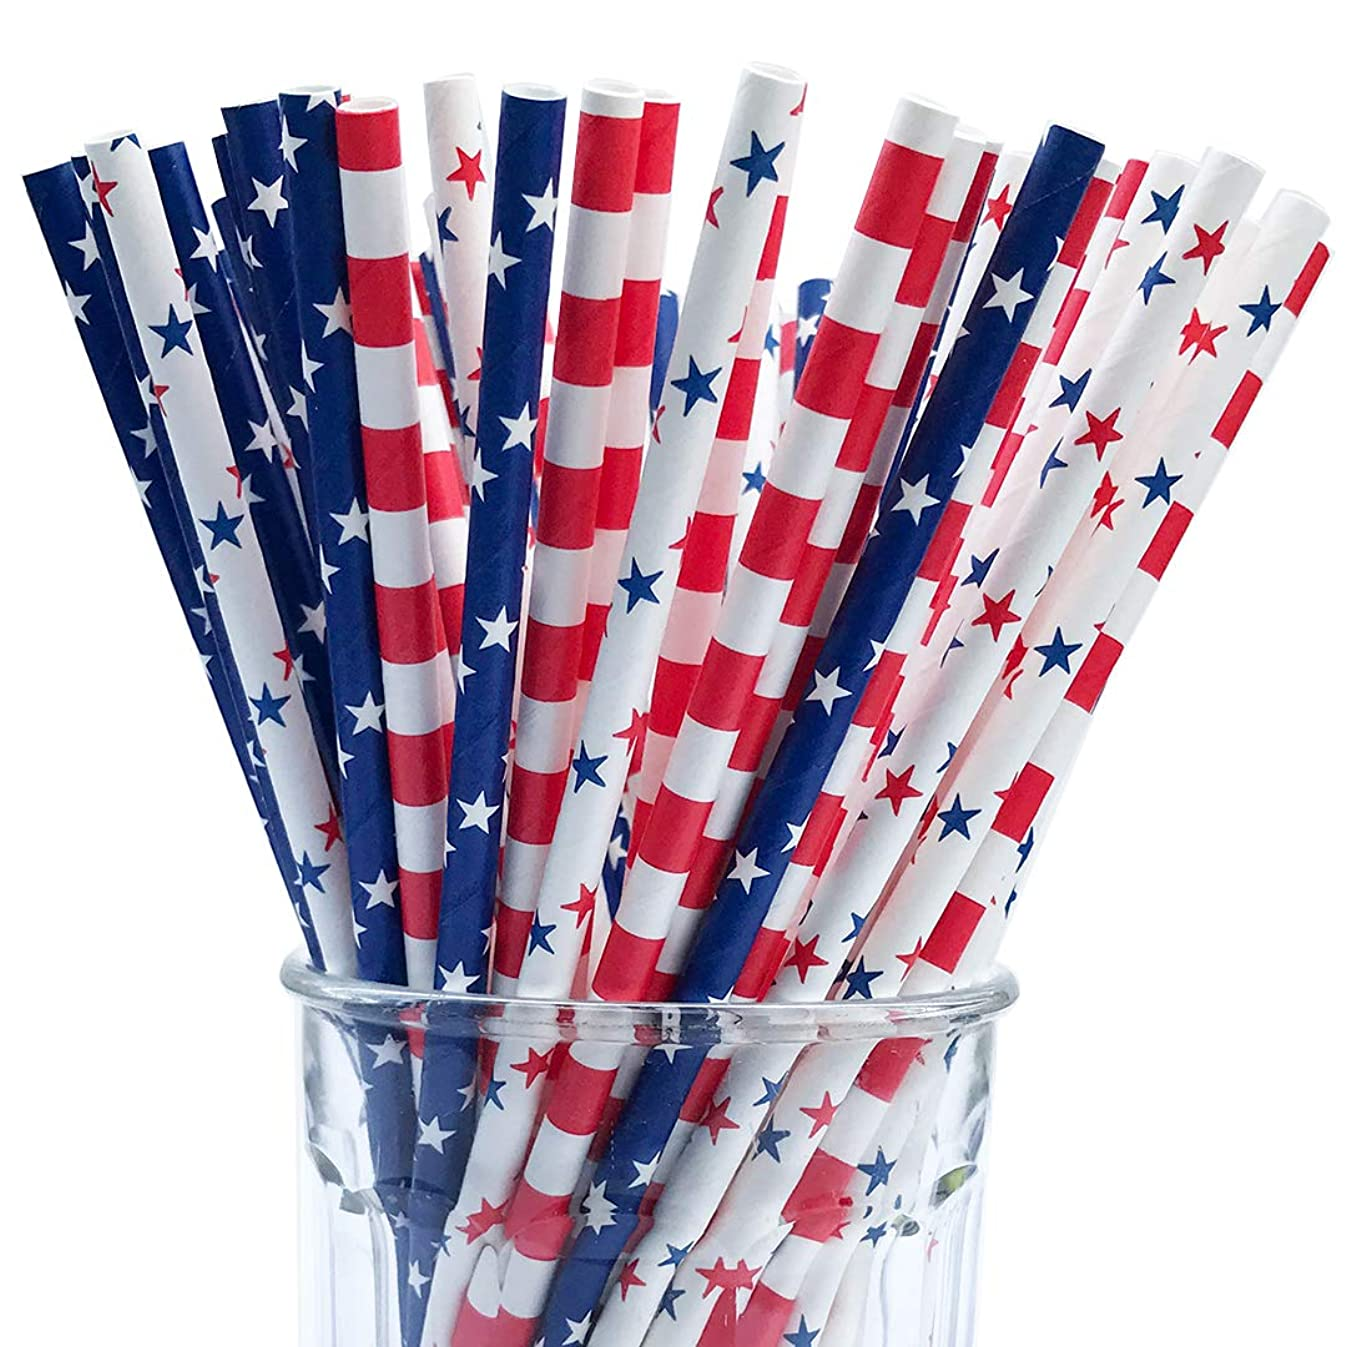 150 American Flag Red White Blue Paper Straw Combo, 3 Designs - 100% Biodegradable - 7.75 Inches - Memorial day and 4th of July Celebration Supply - 150 Straws, 3 Patterns Individually Packed